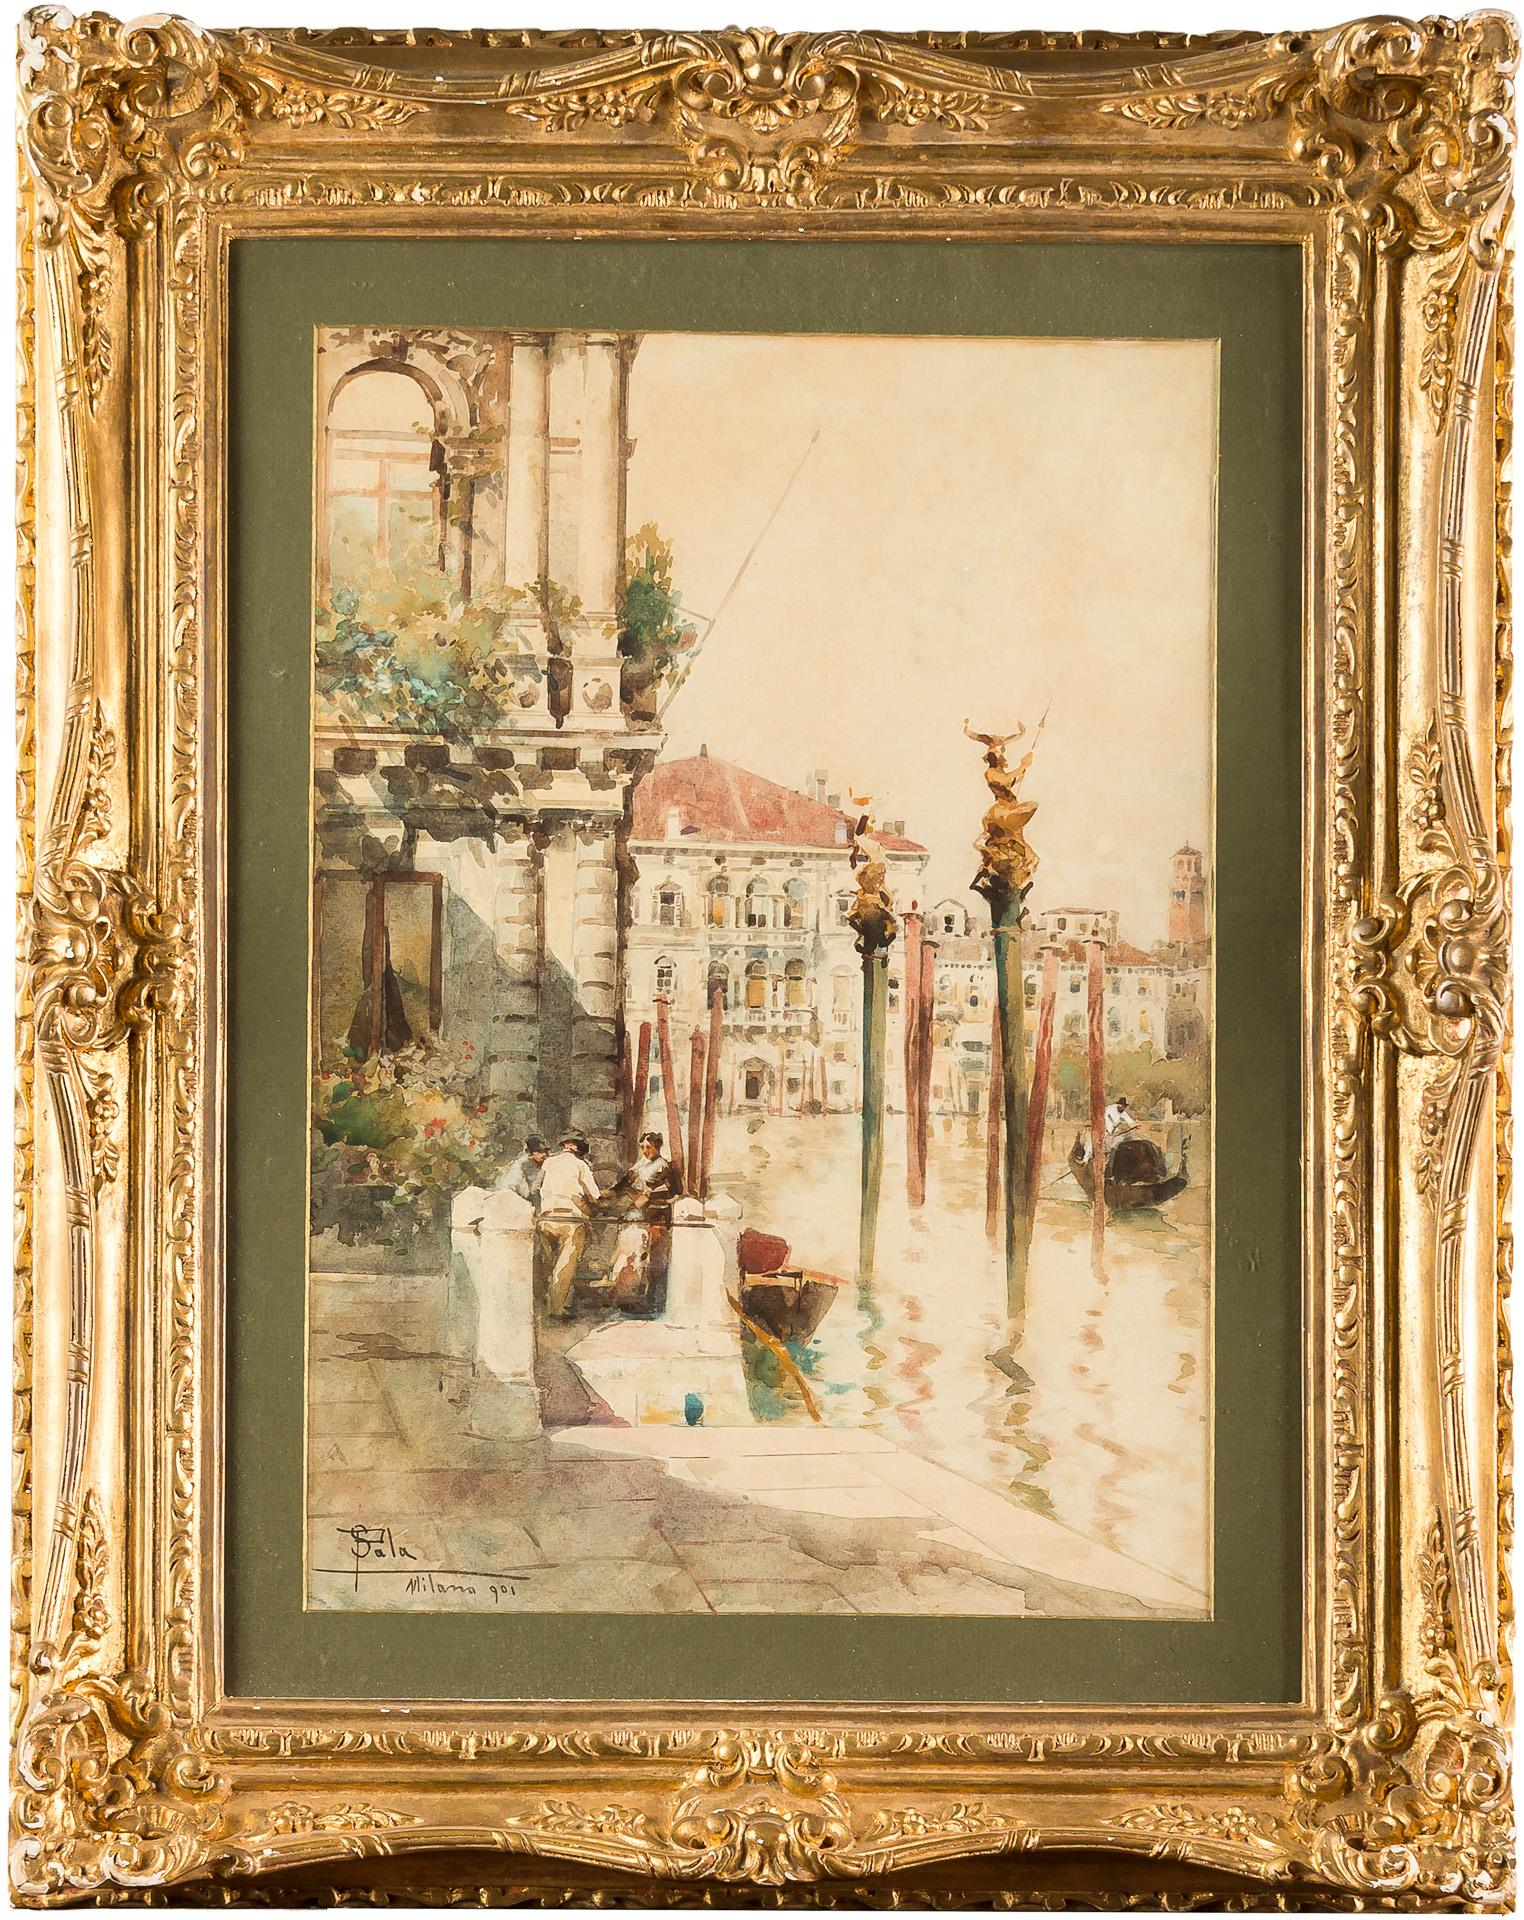 19th century Italian painting view of Venice, Venetian watercolor on paper Italy